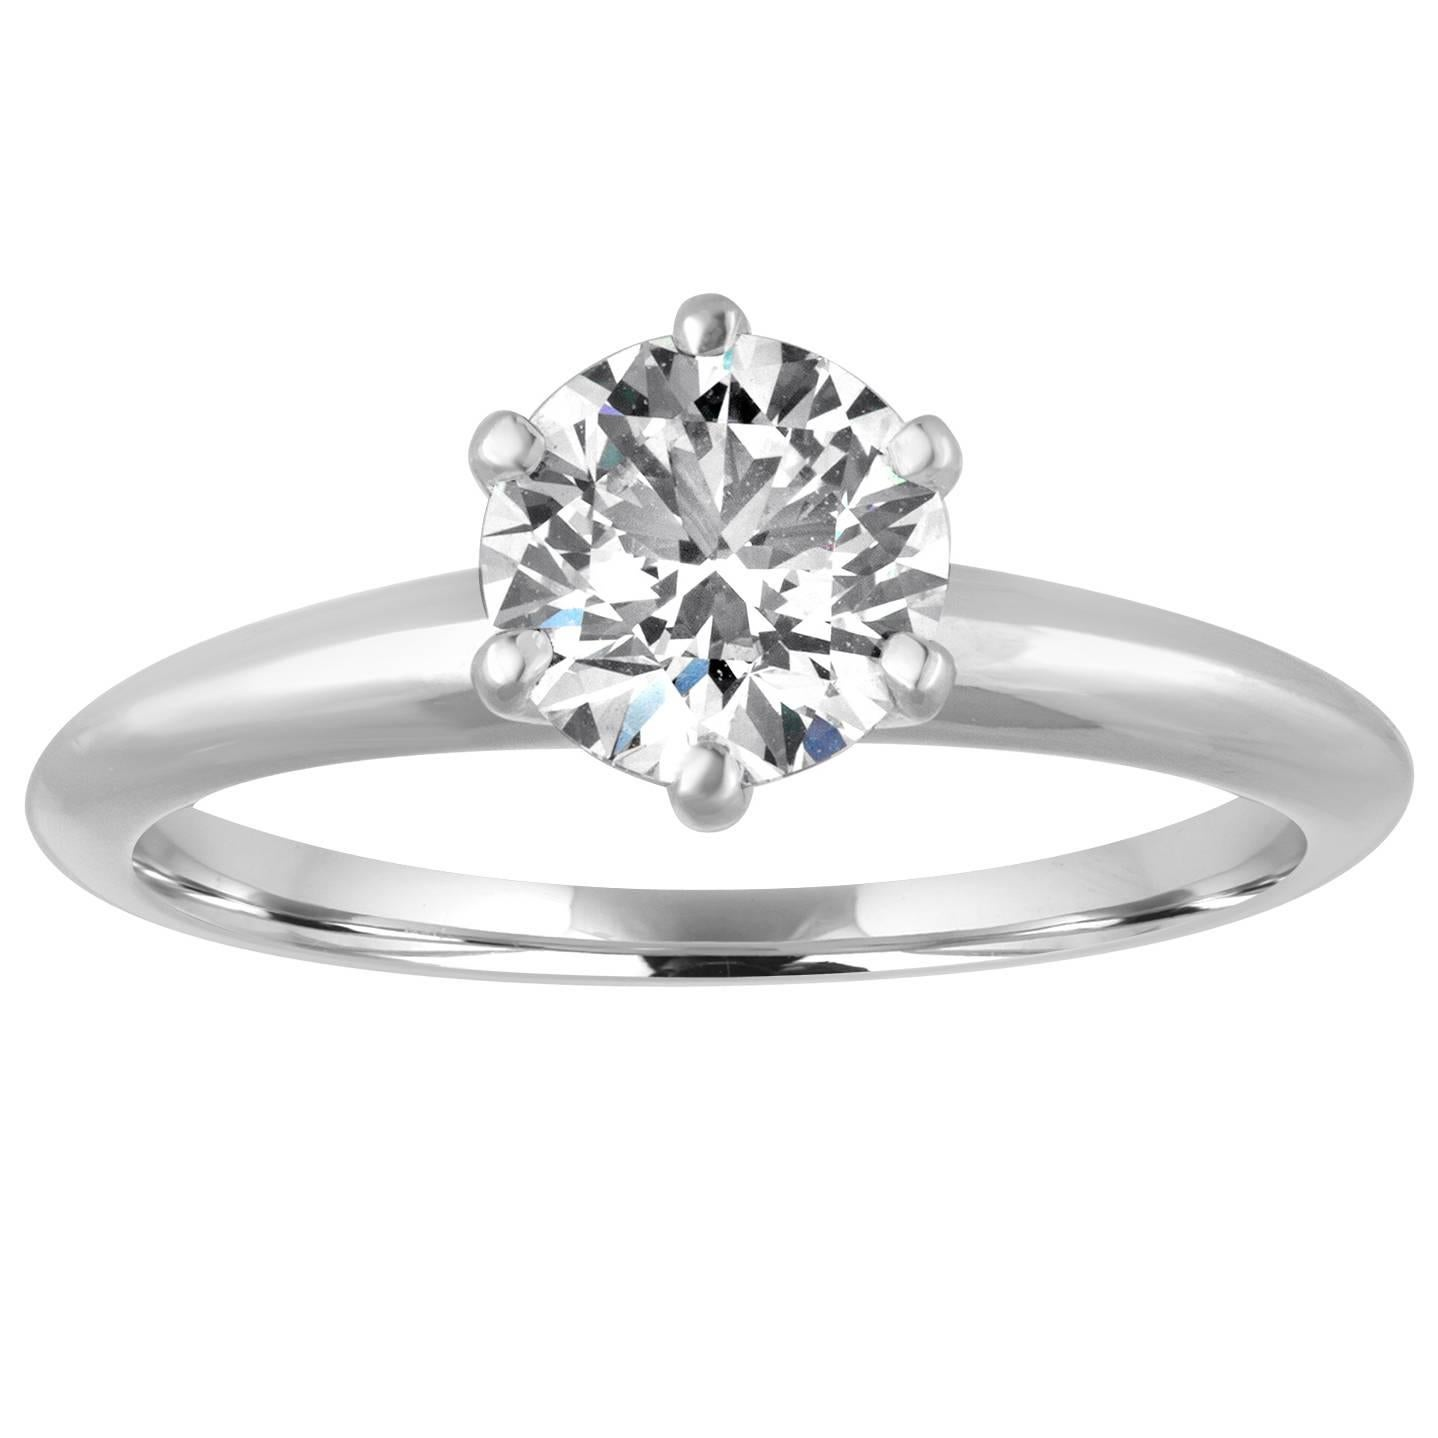 Tiffany & Co. GIA Certified 1.19 Carat F VS1 Diamond Platinum Ring